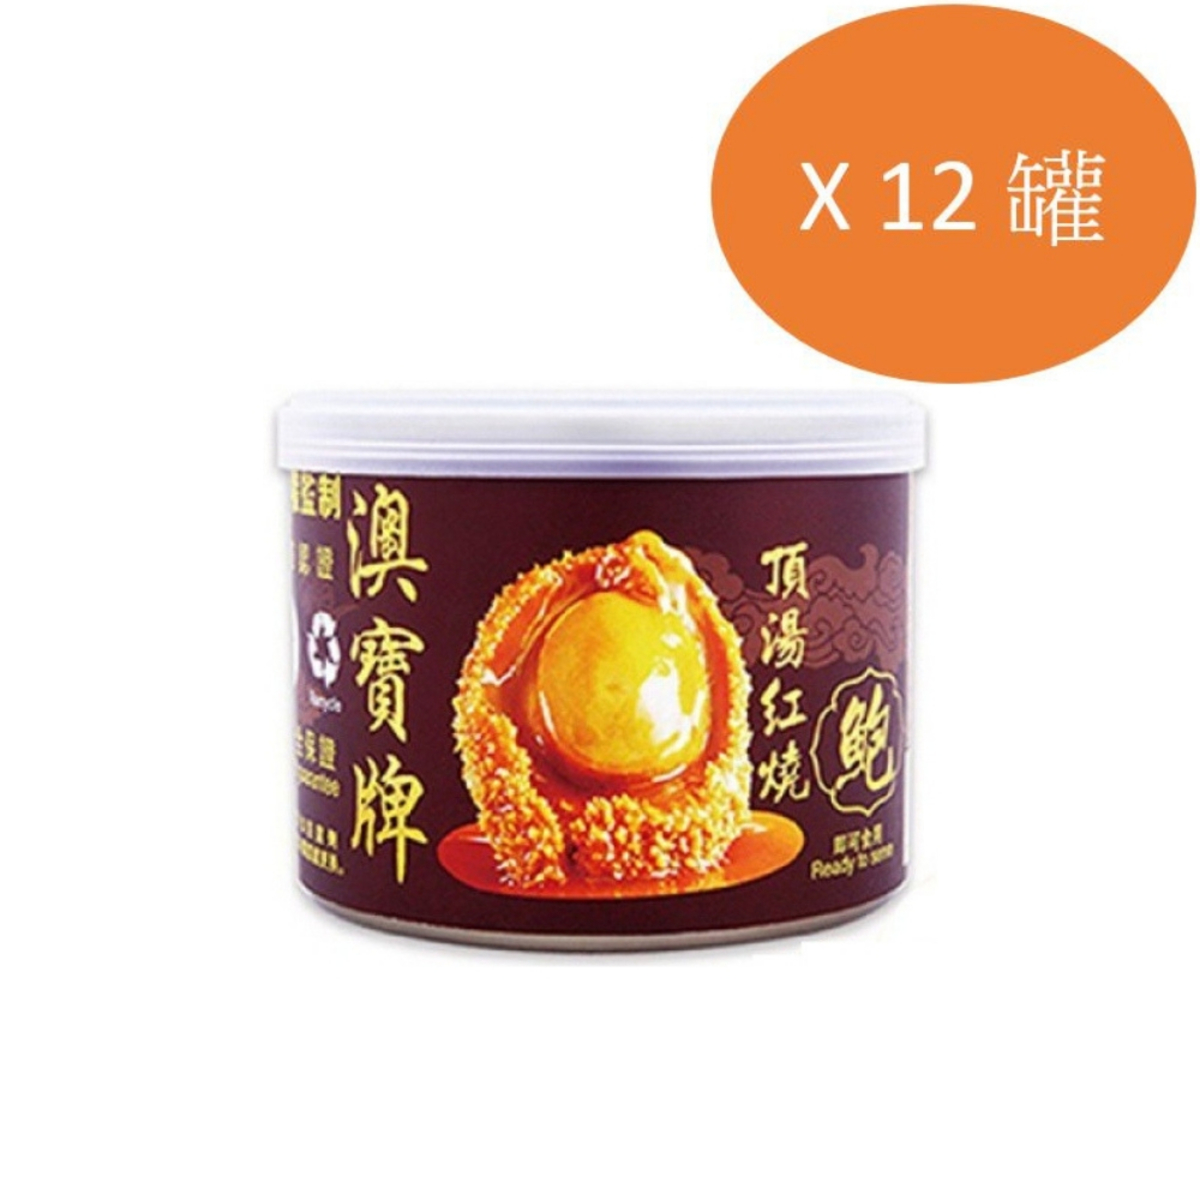 Canned Abalone in Brown Sauce (40g 4pcs) x 12